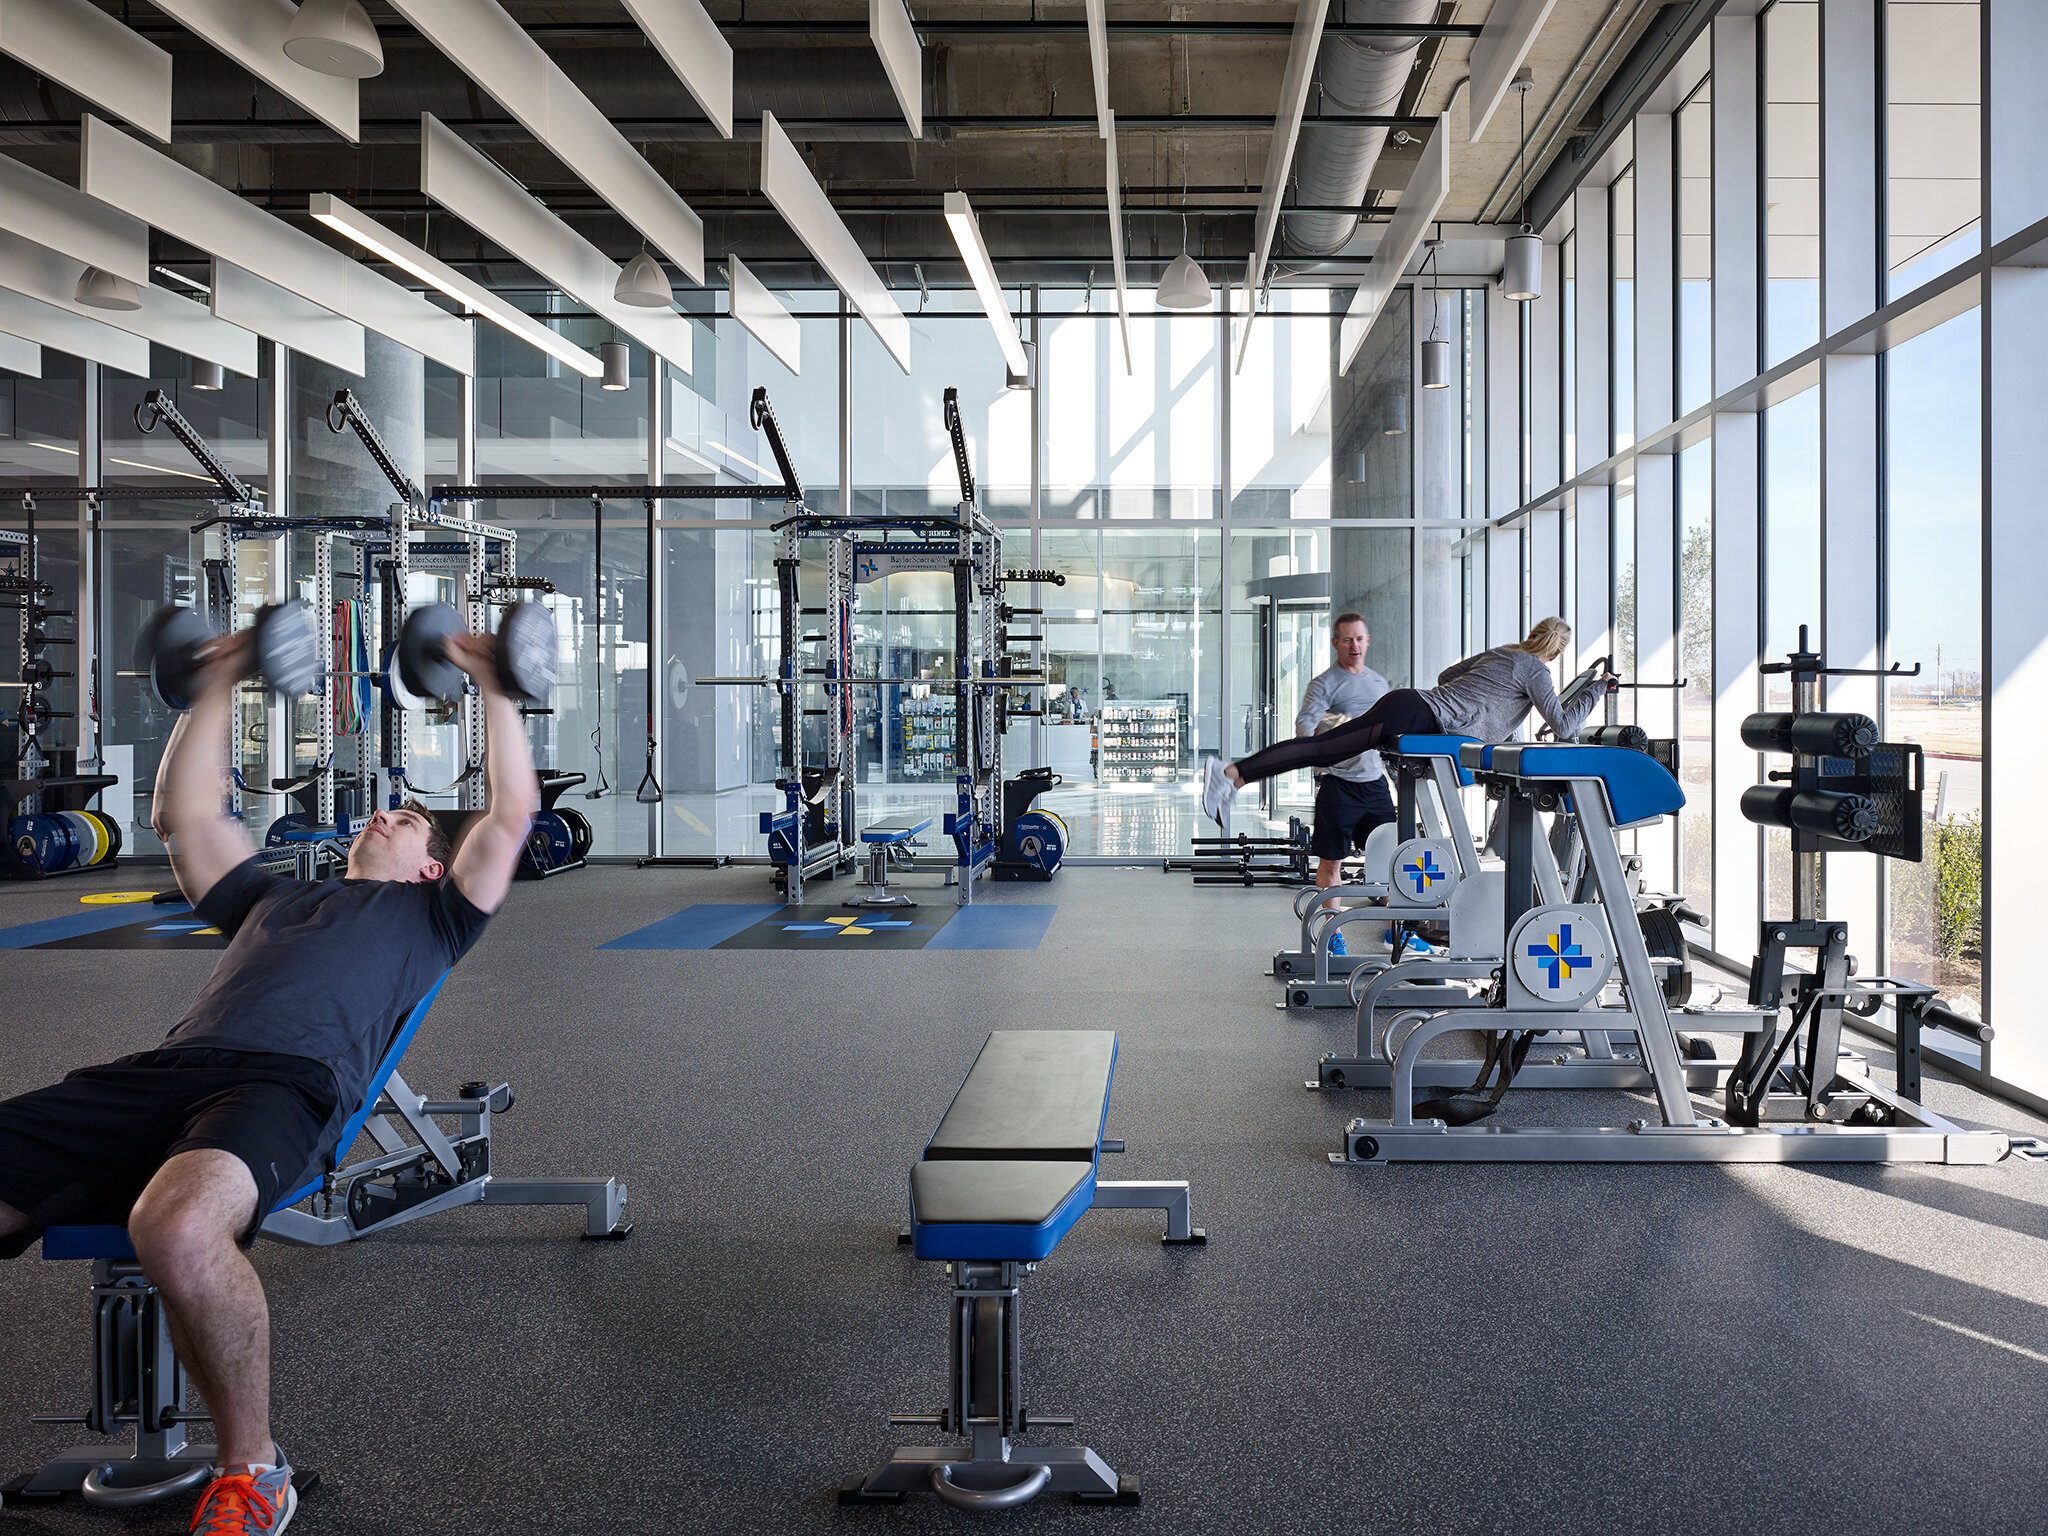 AWARDS  Honor Award, AIA Dallas, 2019  Healthcare Environment Award, Health and Wellness Facility, Contract Magazine, 2019    Baylor Scott & White Sports Therapy & Research at The Star  Perkins+Will  Frisco, Texas     Nick Merrick